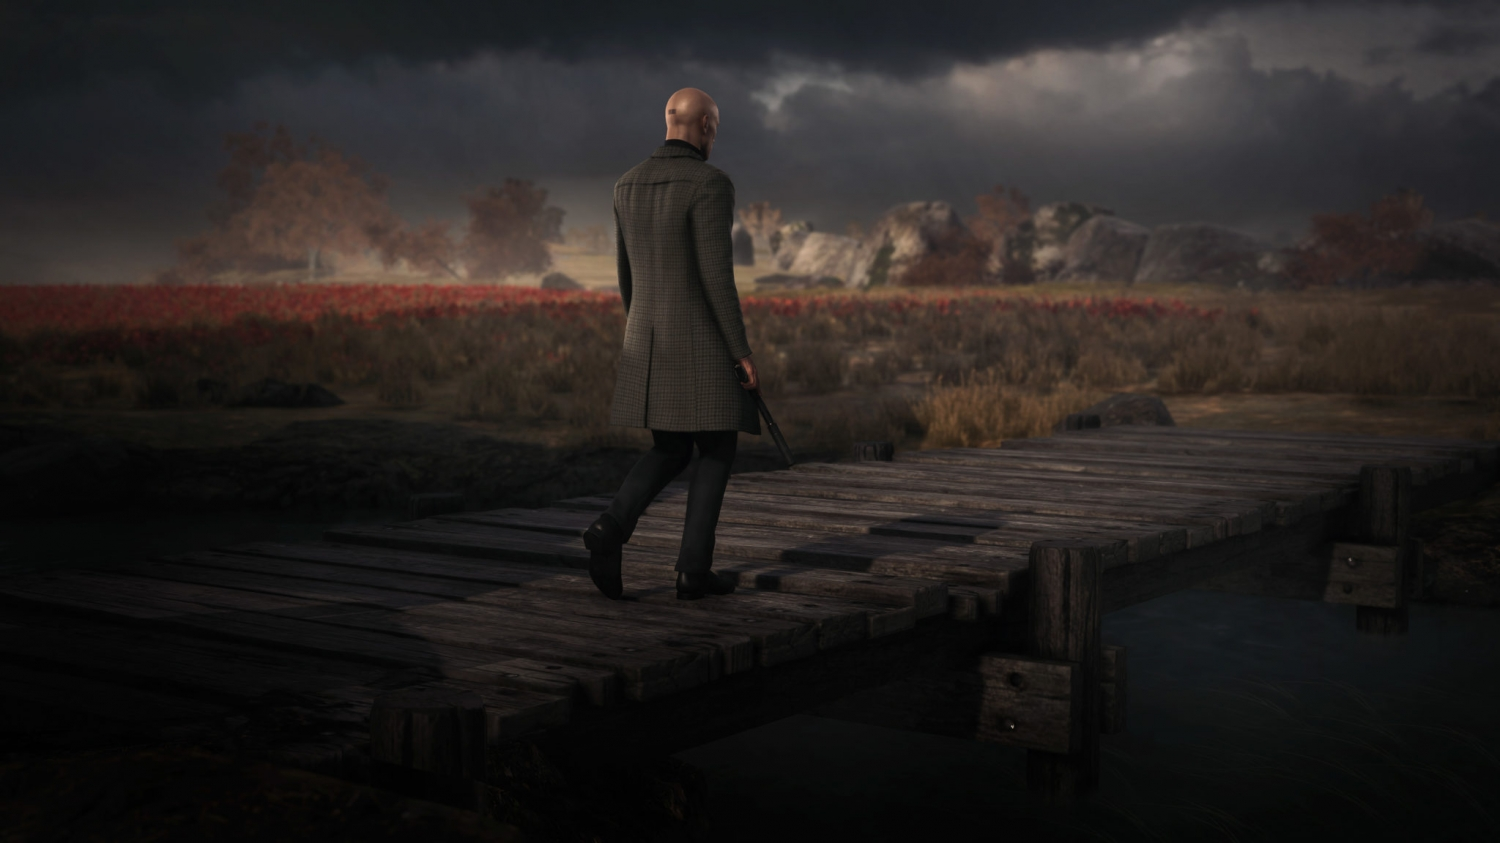 Hitman 3 optimized on PC for 8+ cores, ray tracing patch post-launch 01   TweakTown.com